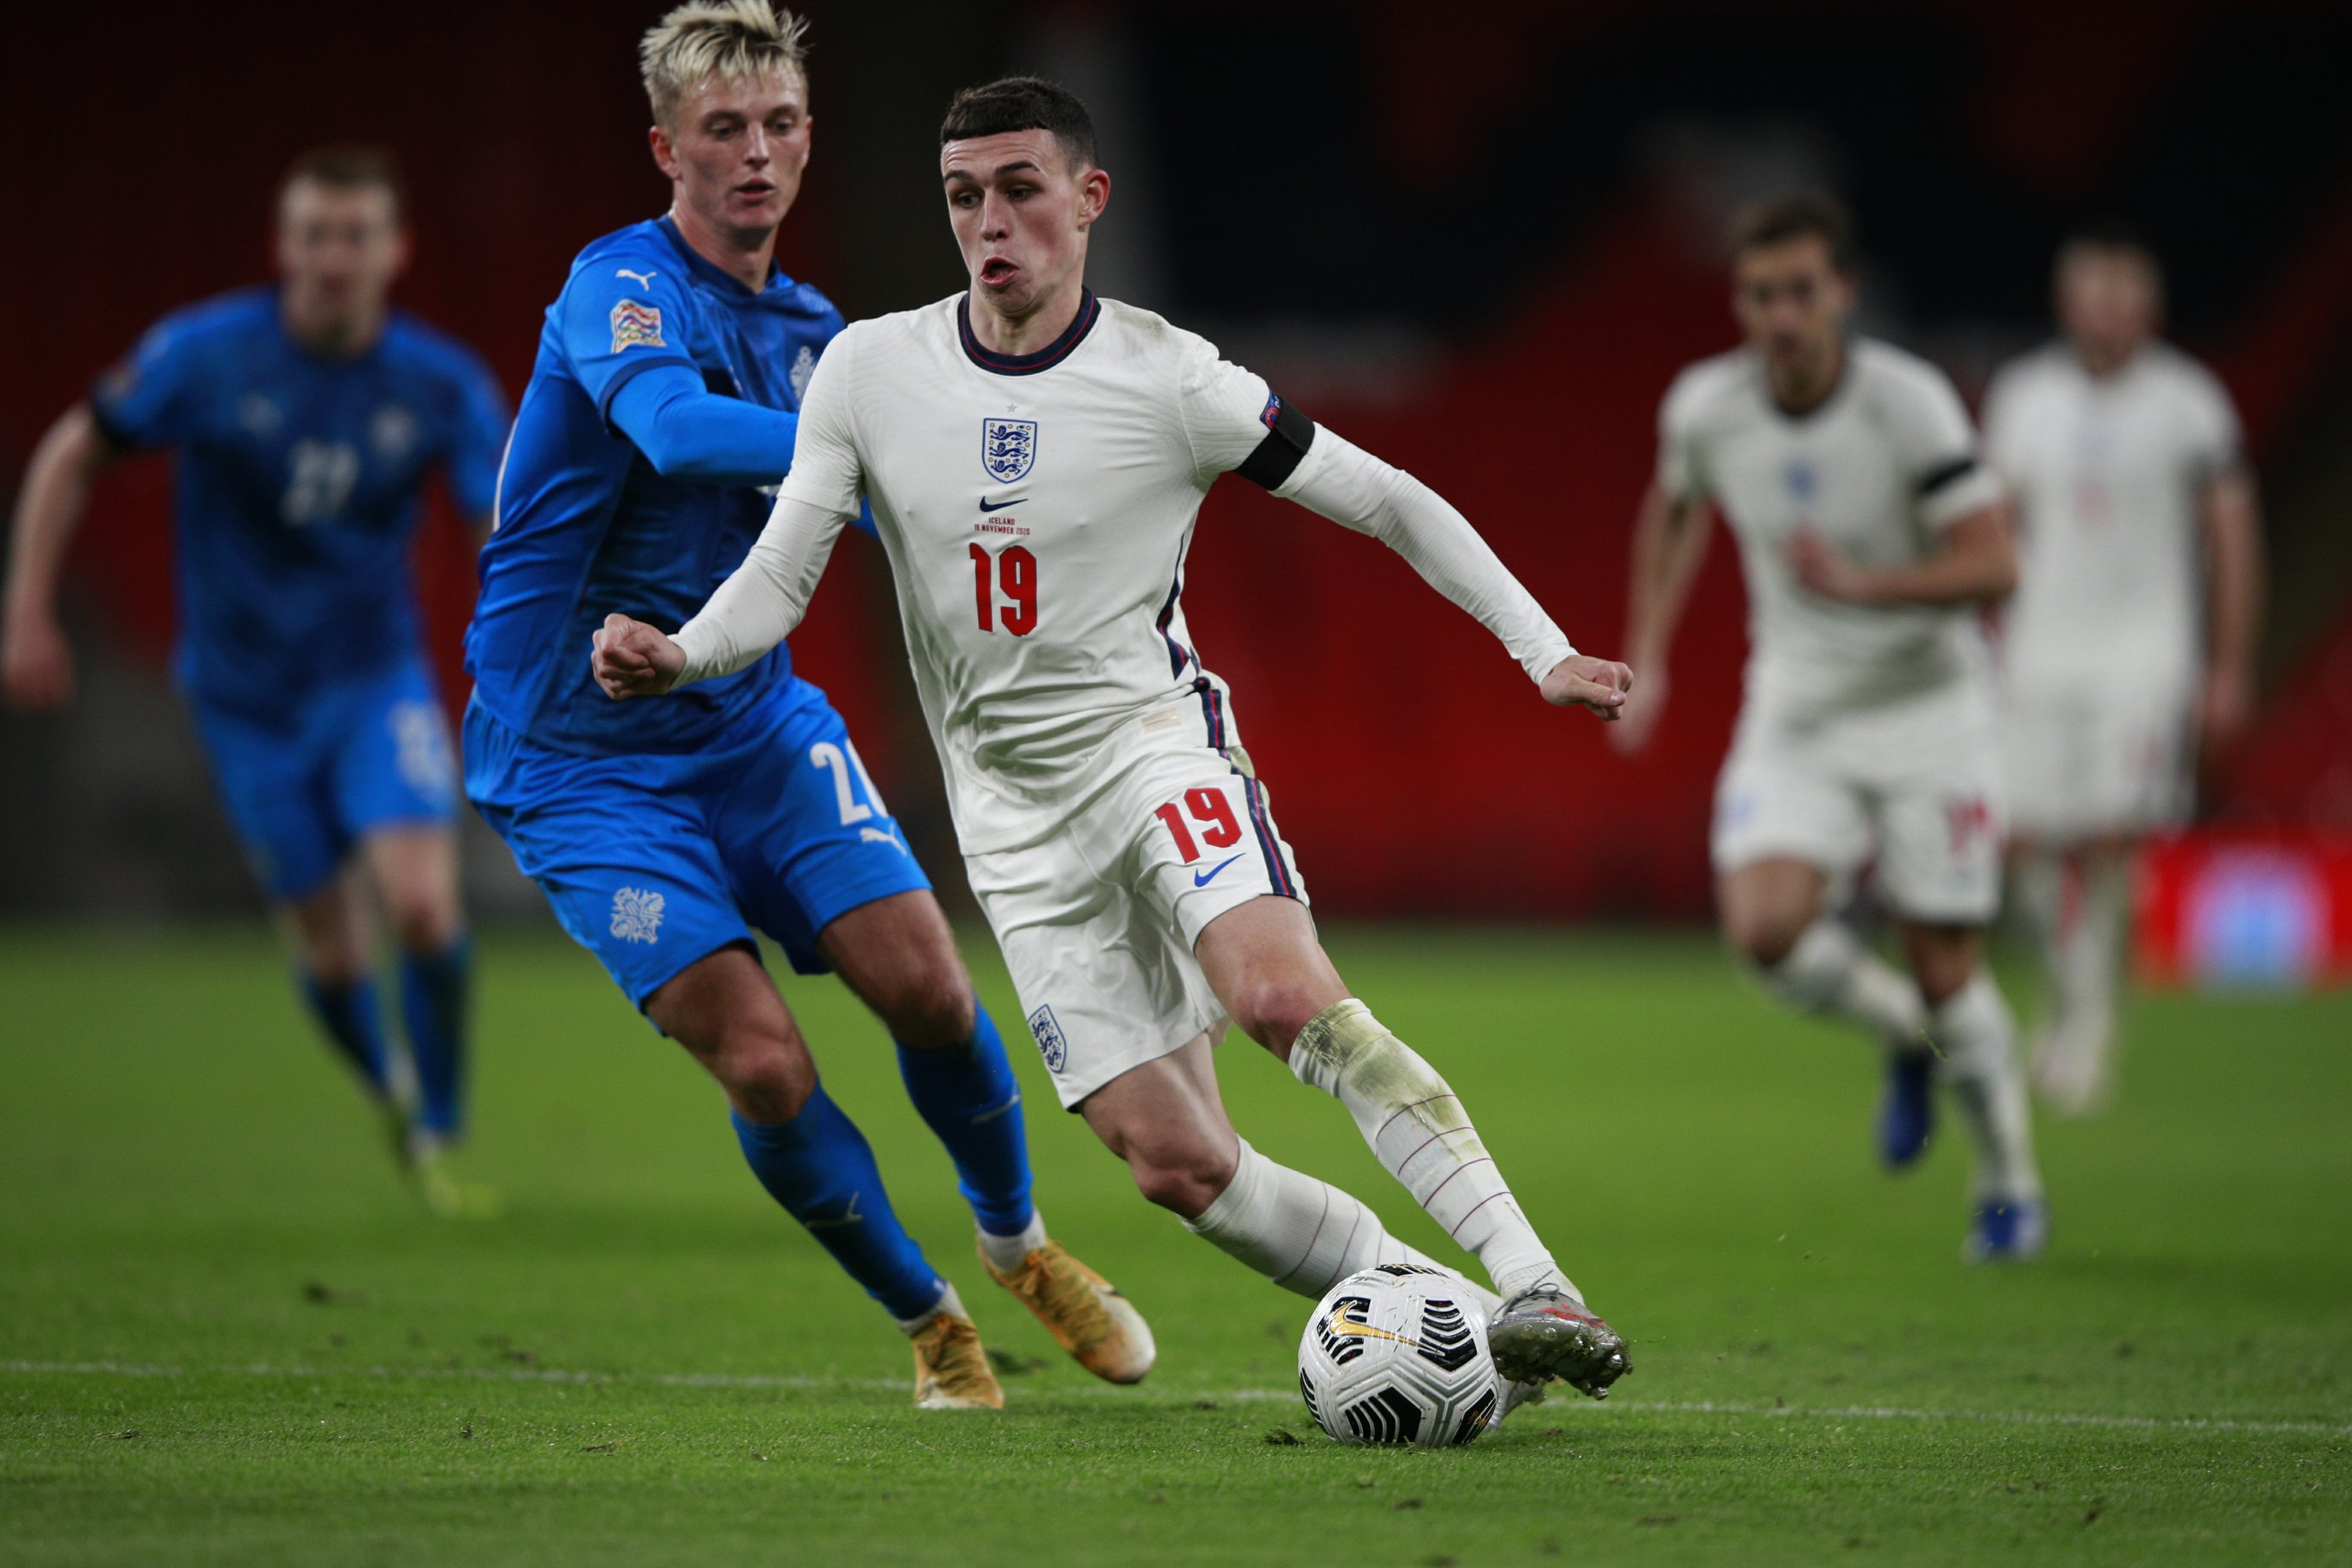 Foden wins over Southgate again with first England goals